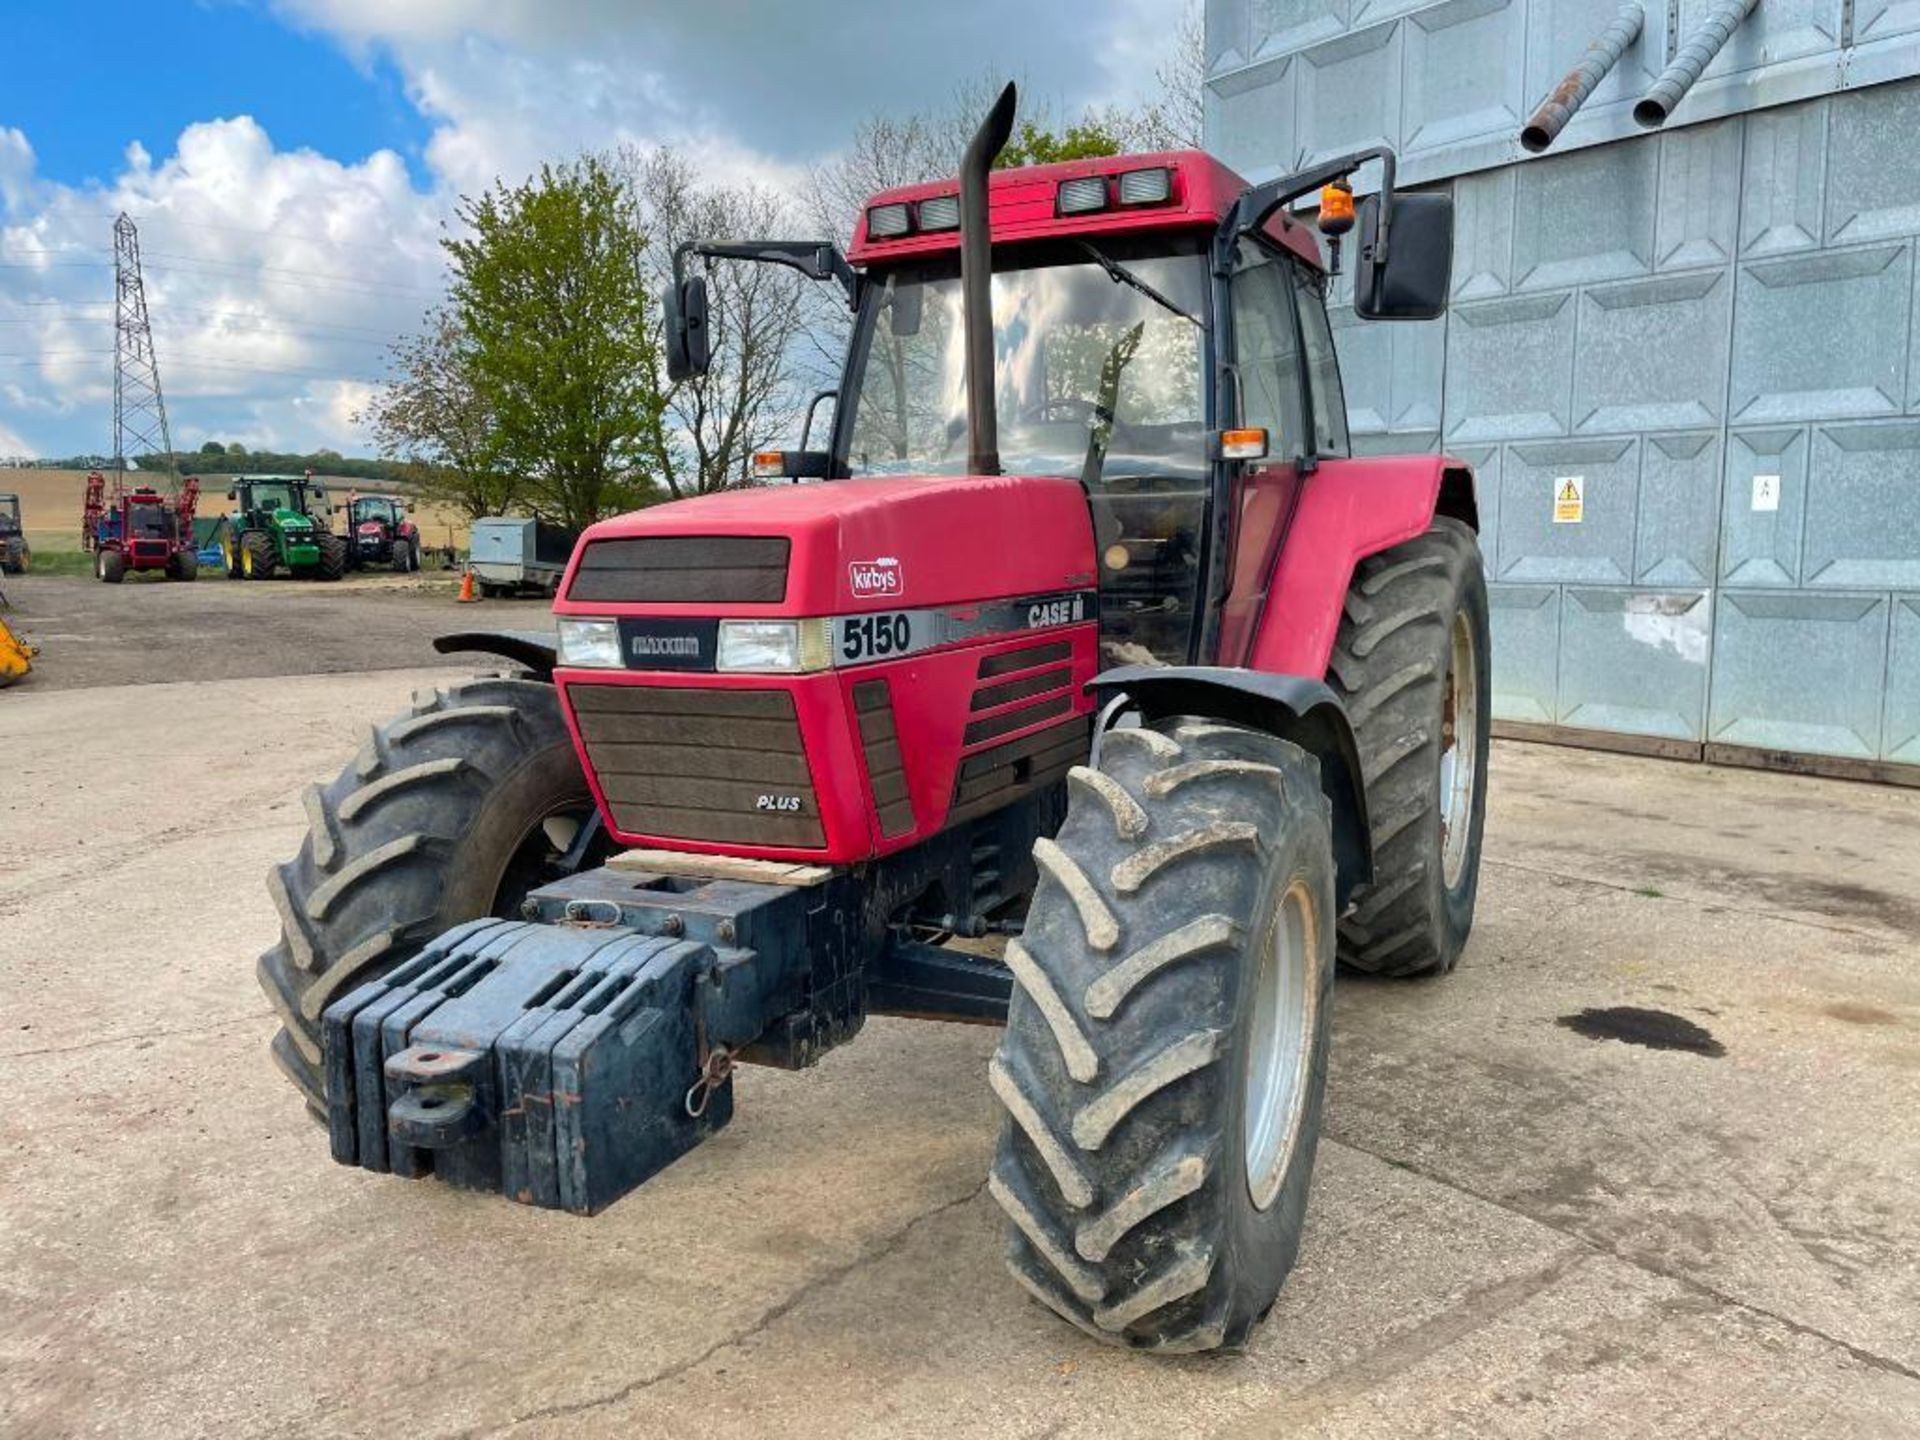 1997 Case IH 5150 Maxxum Plus Powershift 4wd tractor with 2 spools, PUH and front wafer weights on 1 - Image 8 of 13